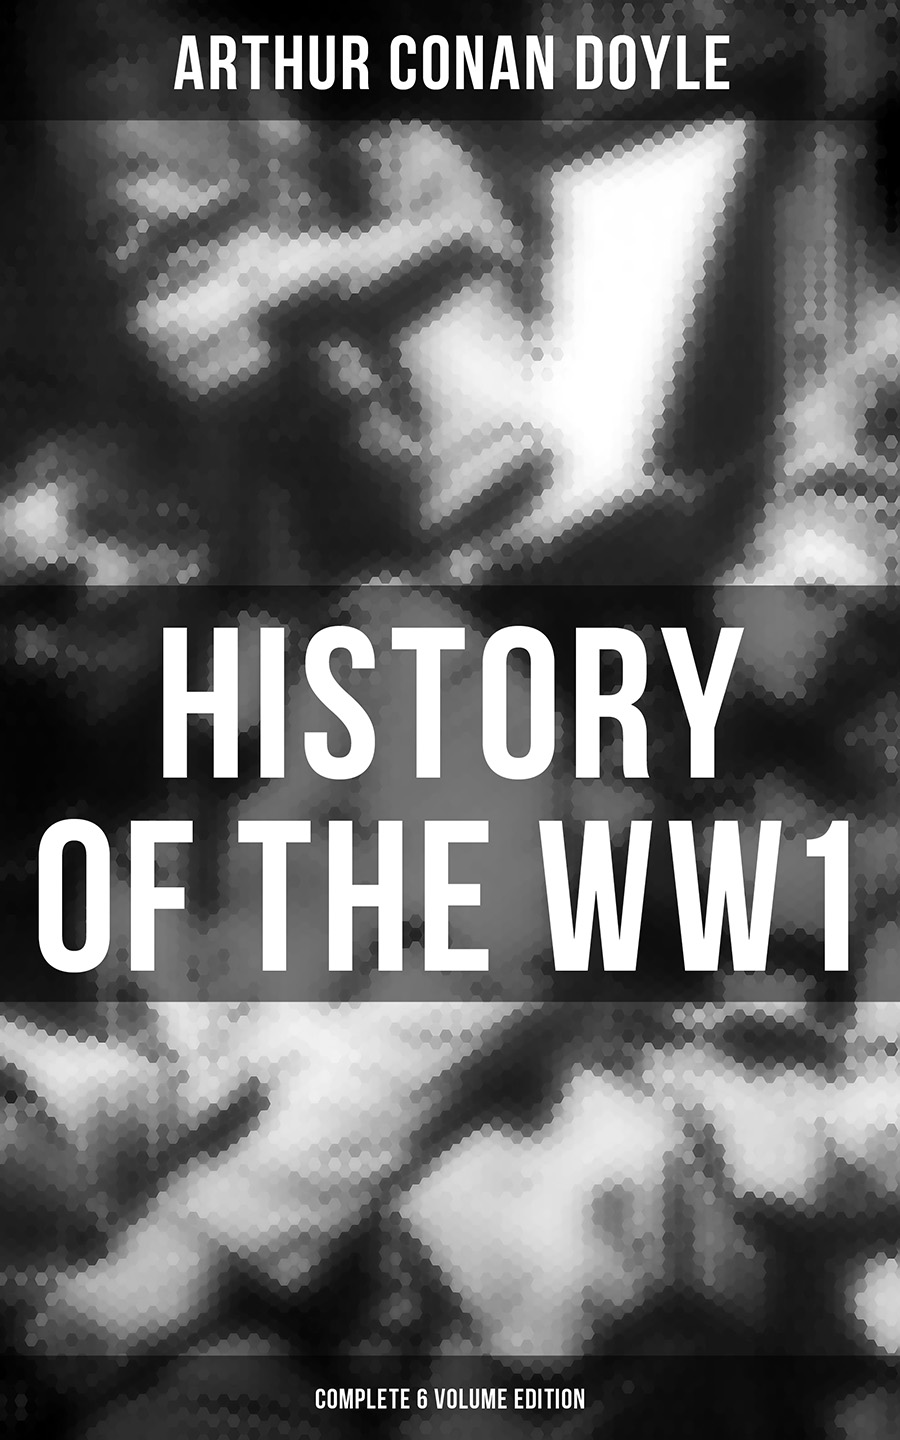 history of the ww1 complete 6 volume edition